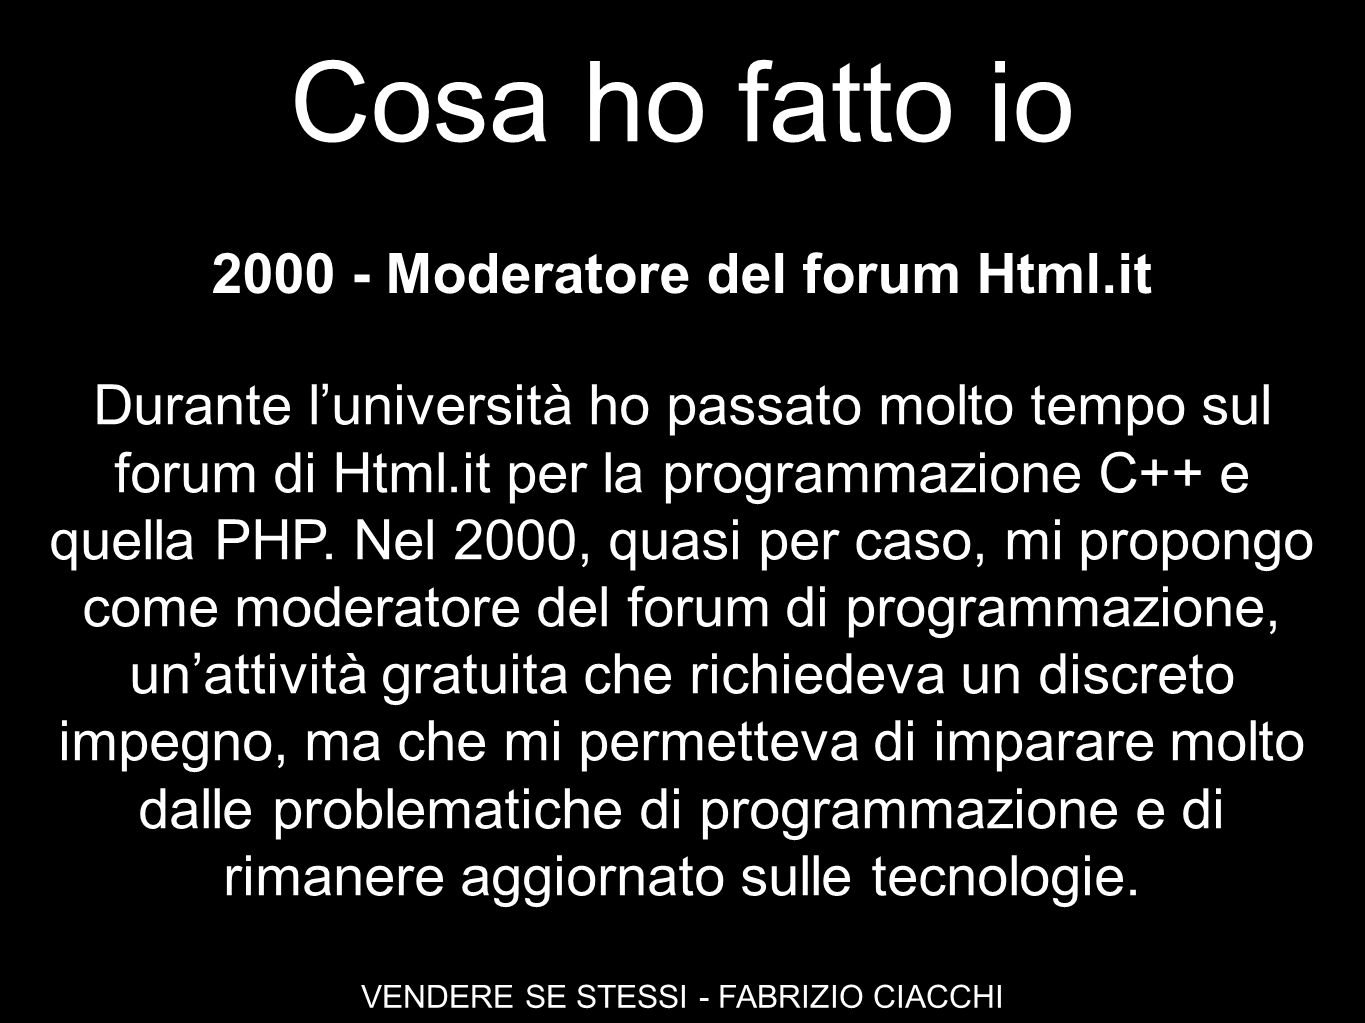 Moderatore del forum Html.it